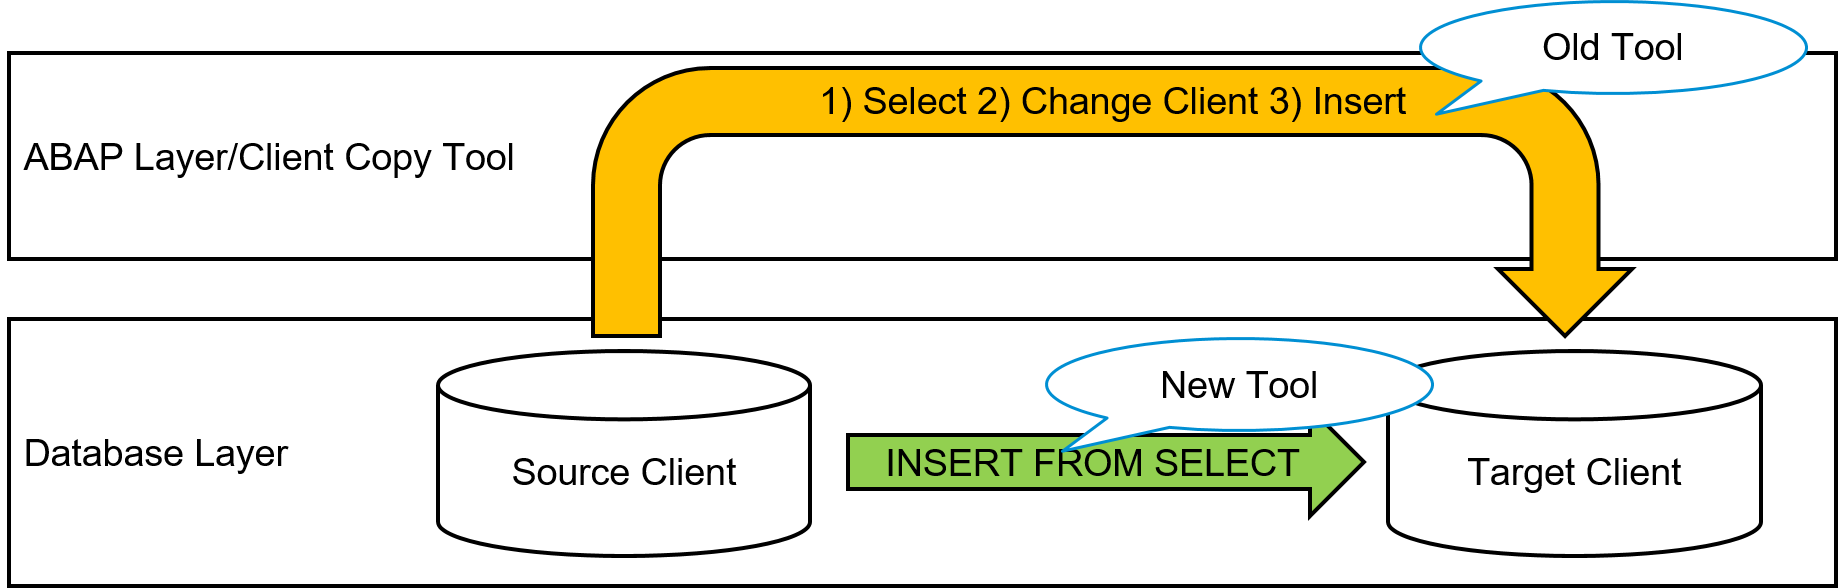 INSERT%20%28Target%20Client%29%20FROM%20SELECT%20%28Source%20Client%29